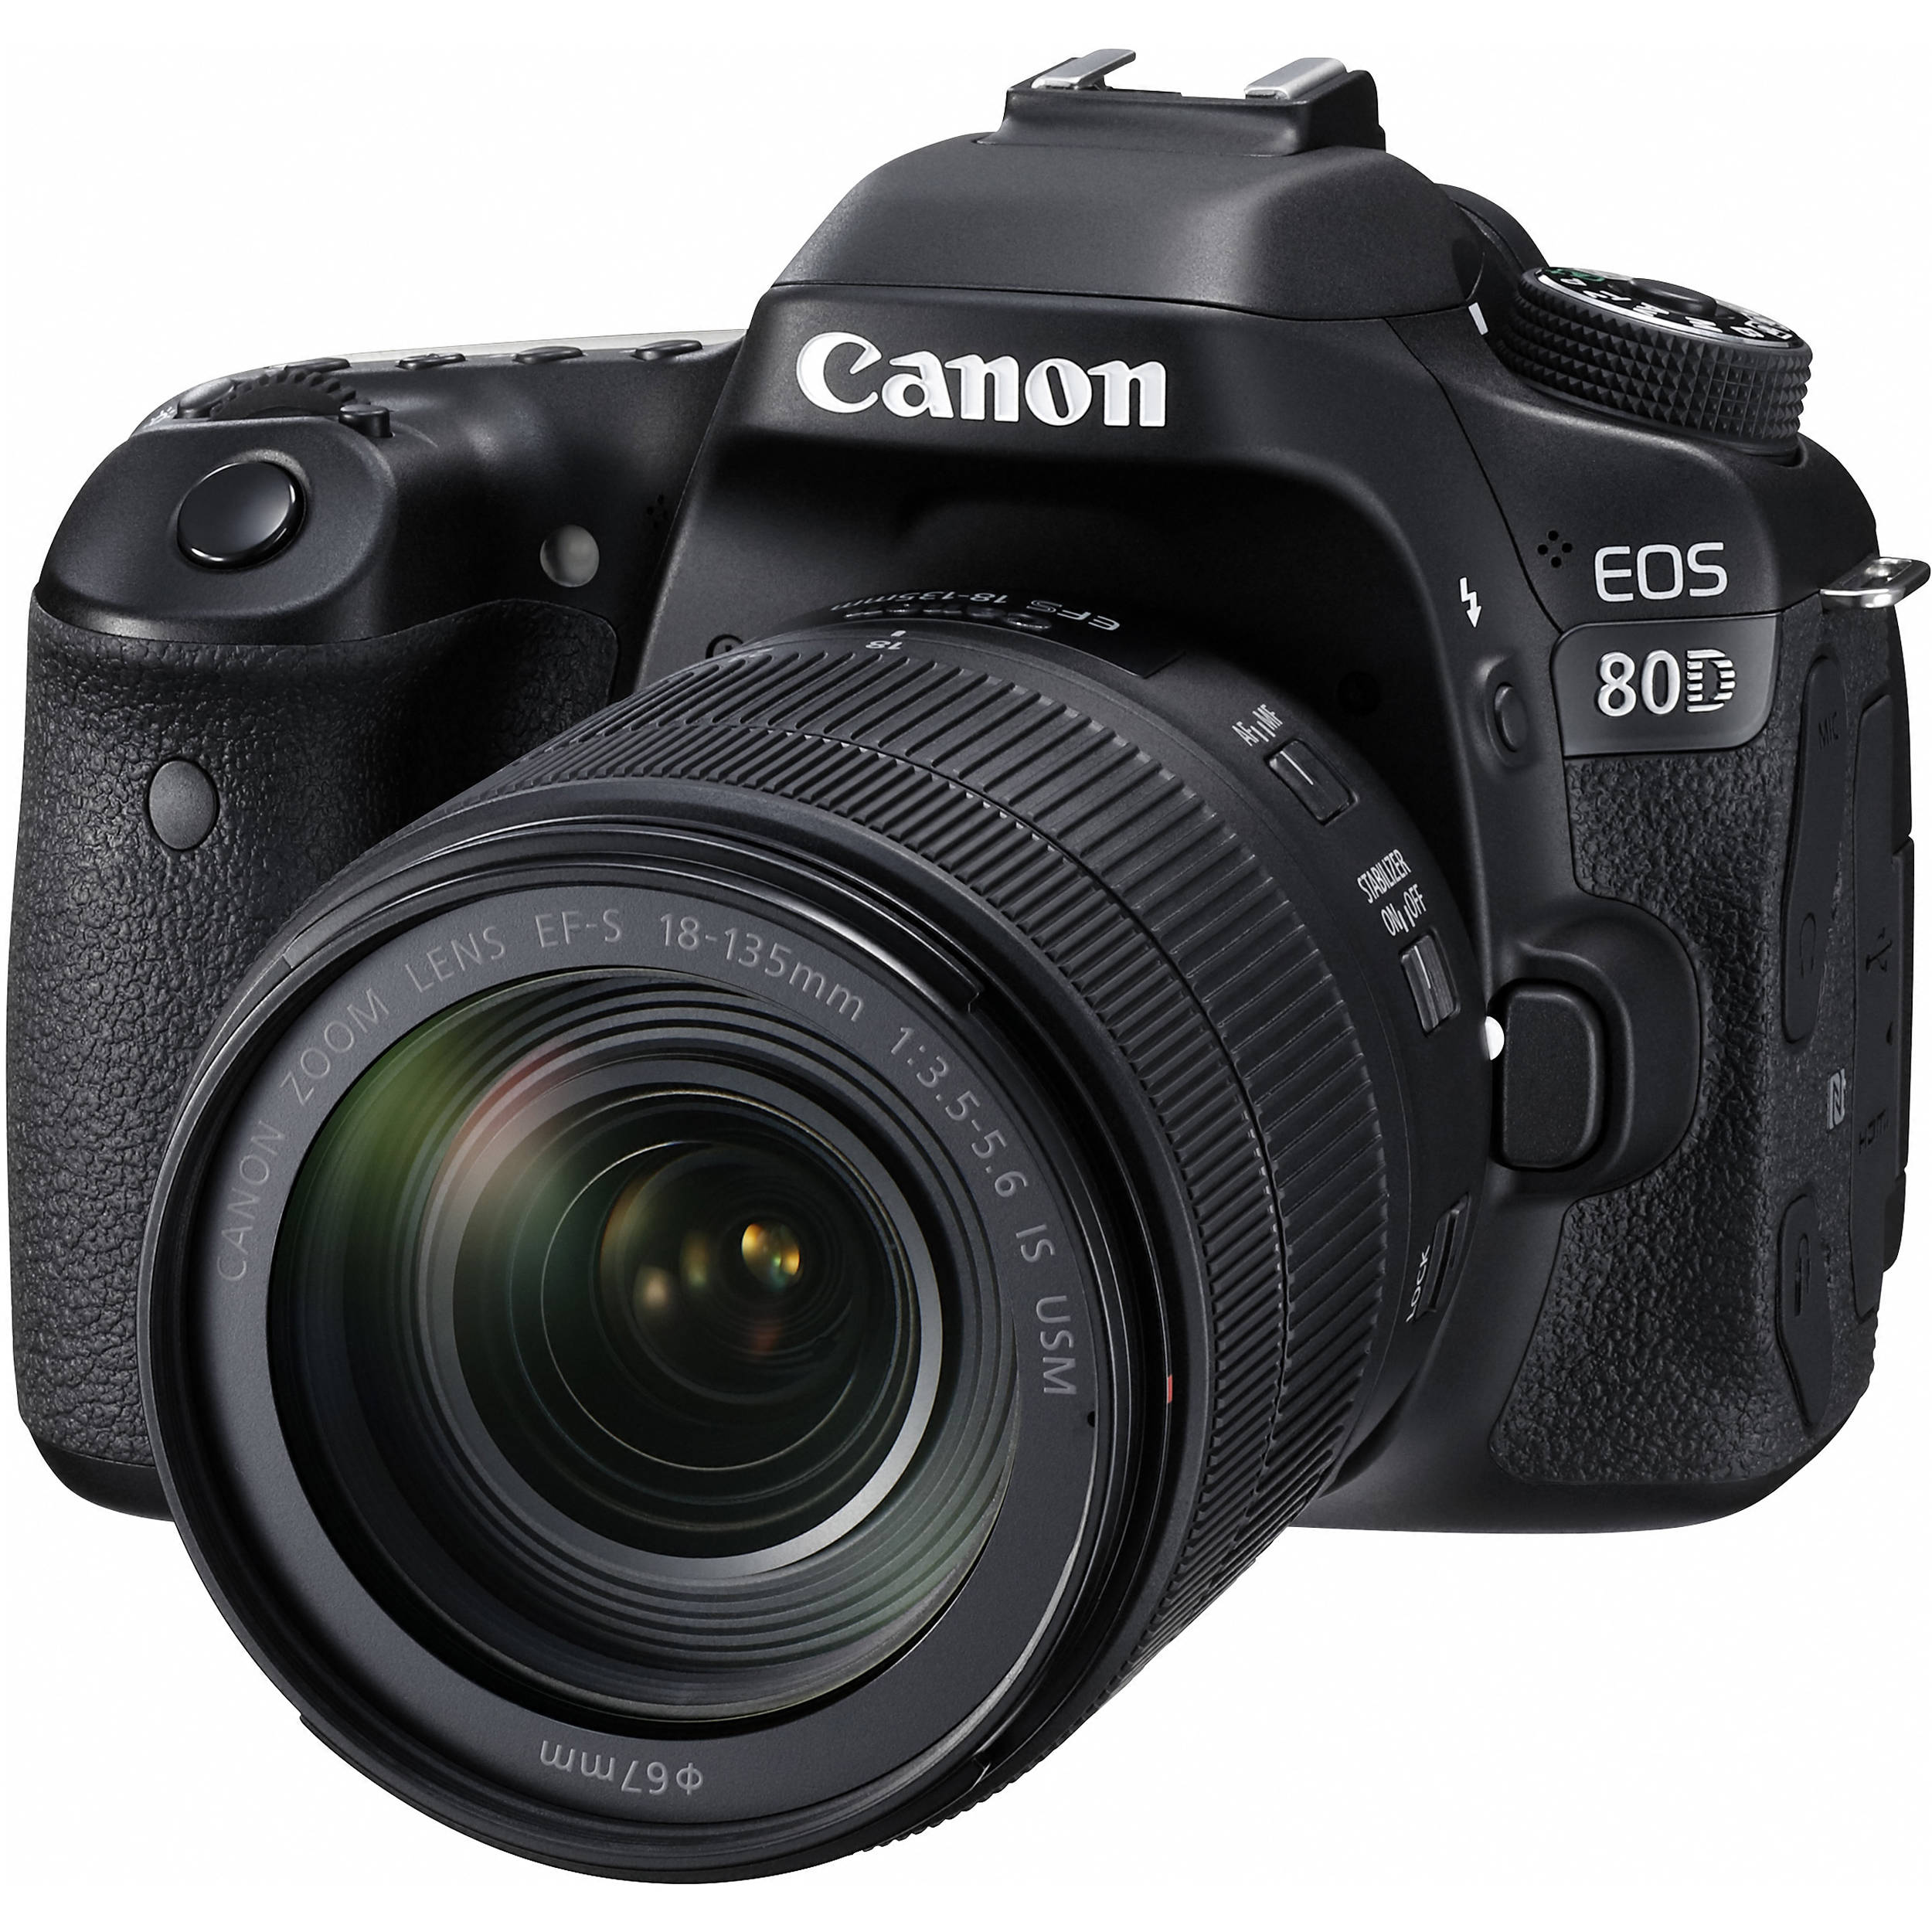 Canon Eos 80D Dslr Camera With 18-135Mm Lens 1263C006 B&Amp;H Photo